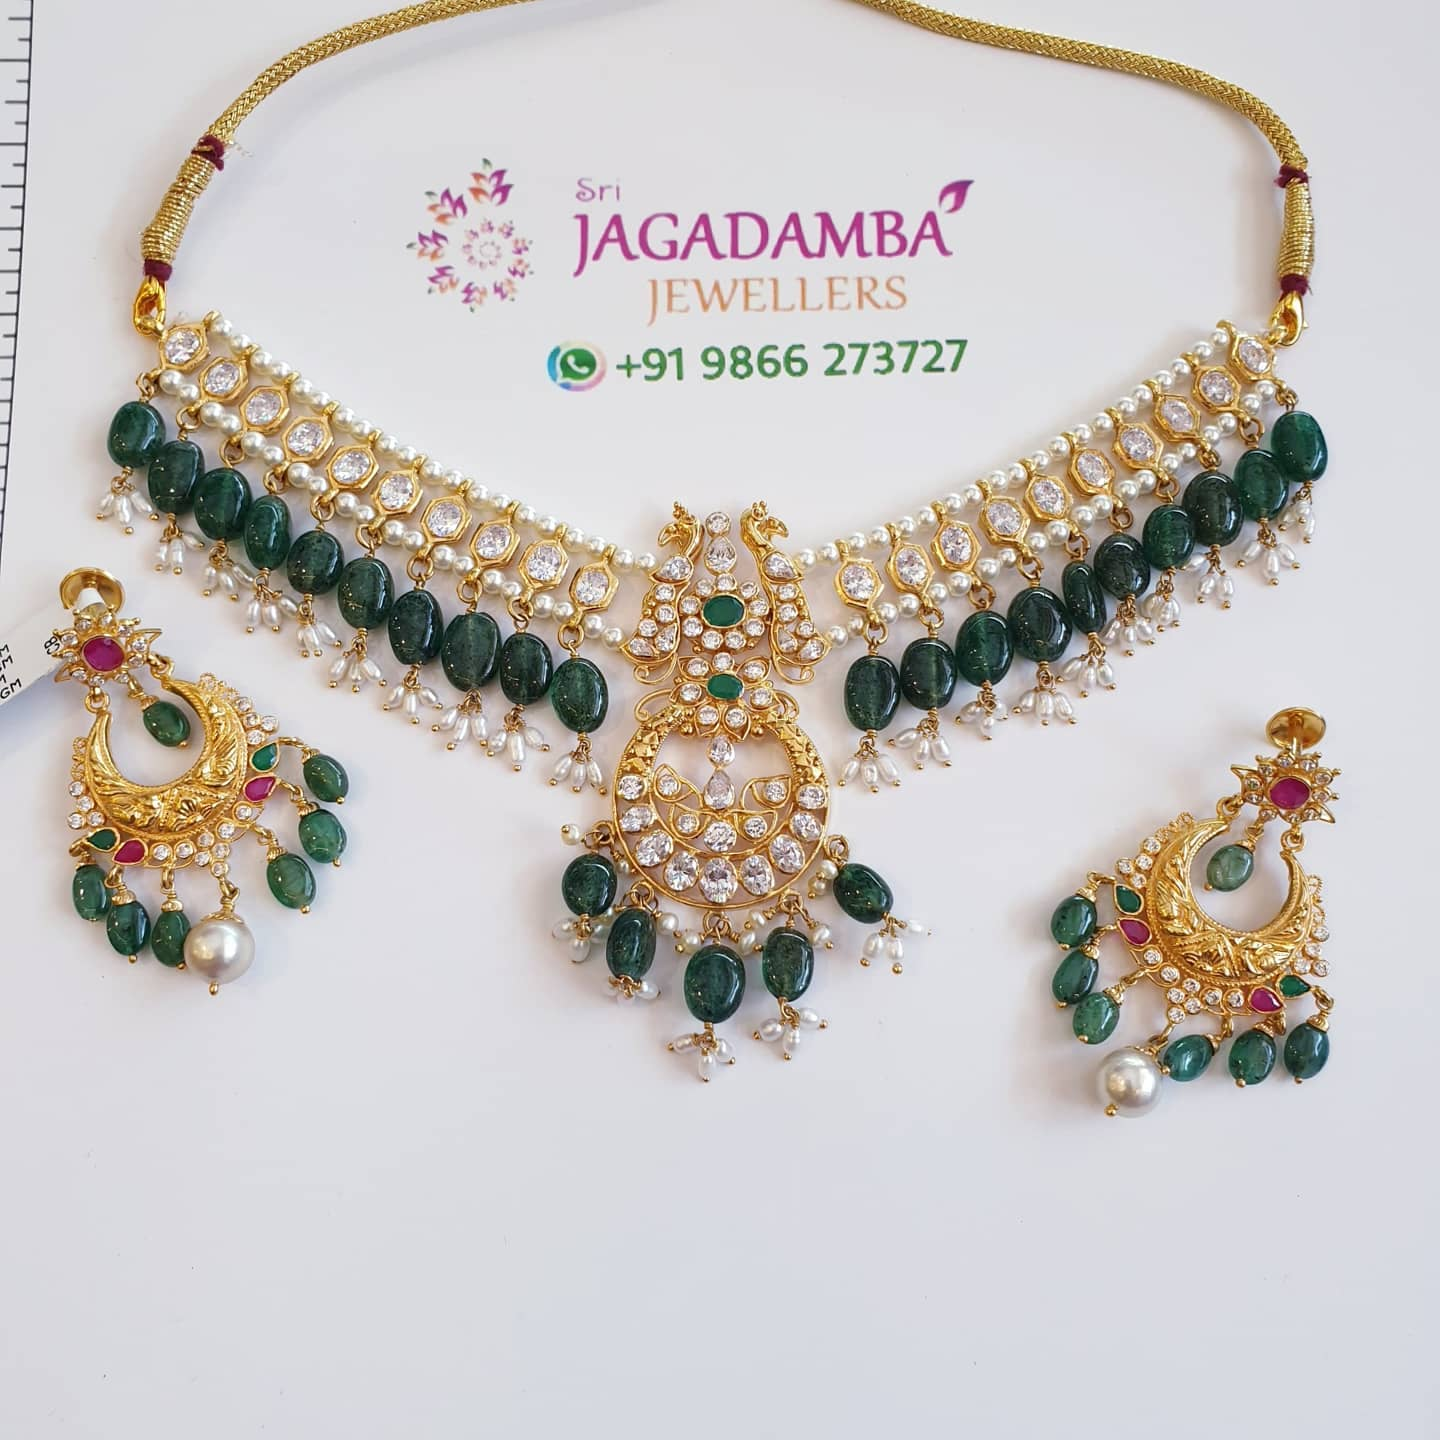 Peacock drop necklace set Neck net 25gm Tops net 11.5gm For details to buy Whatsapp +919866273727 2021-01-23